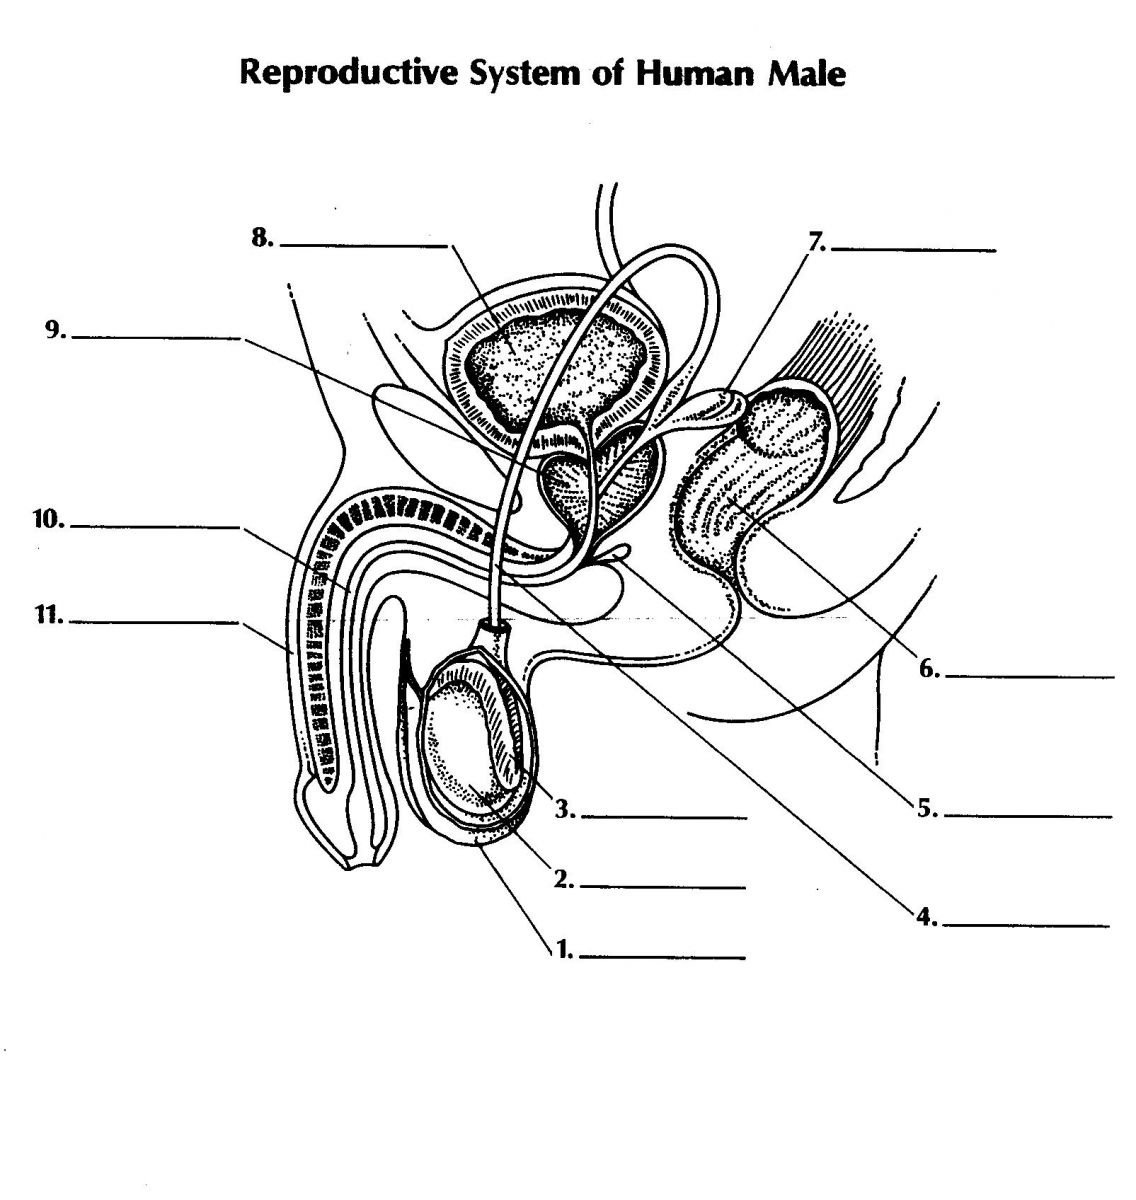 male reproductive system diagram blank and answers